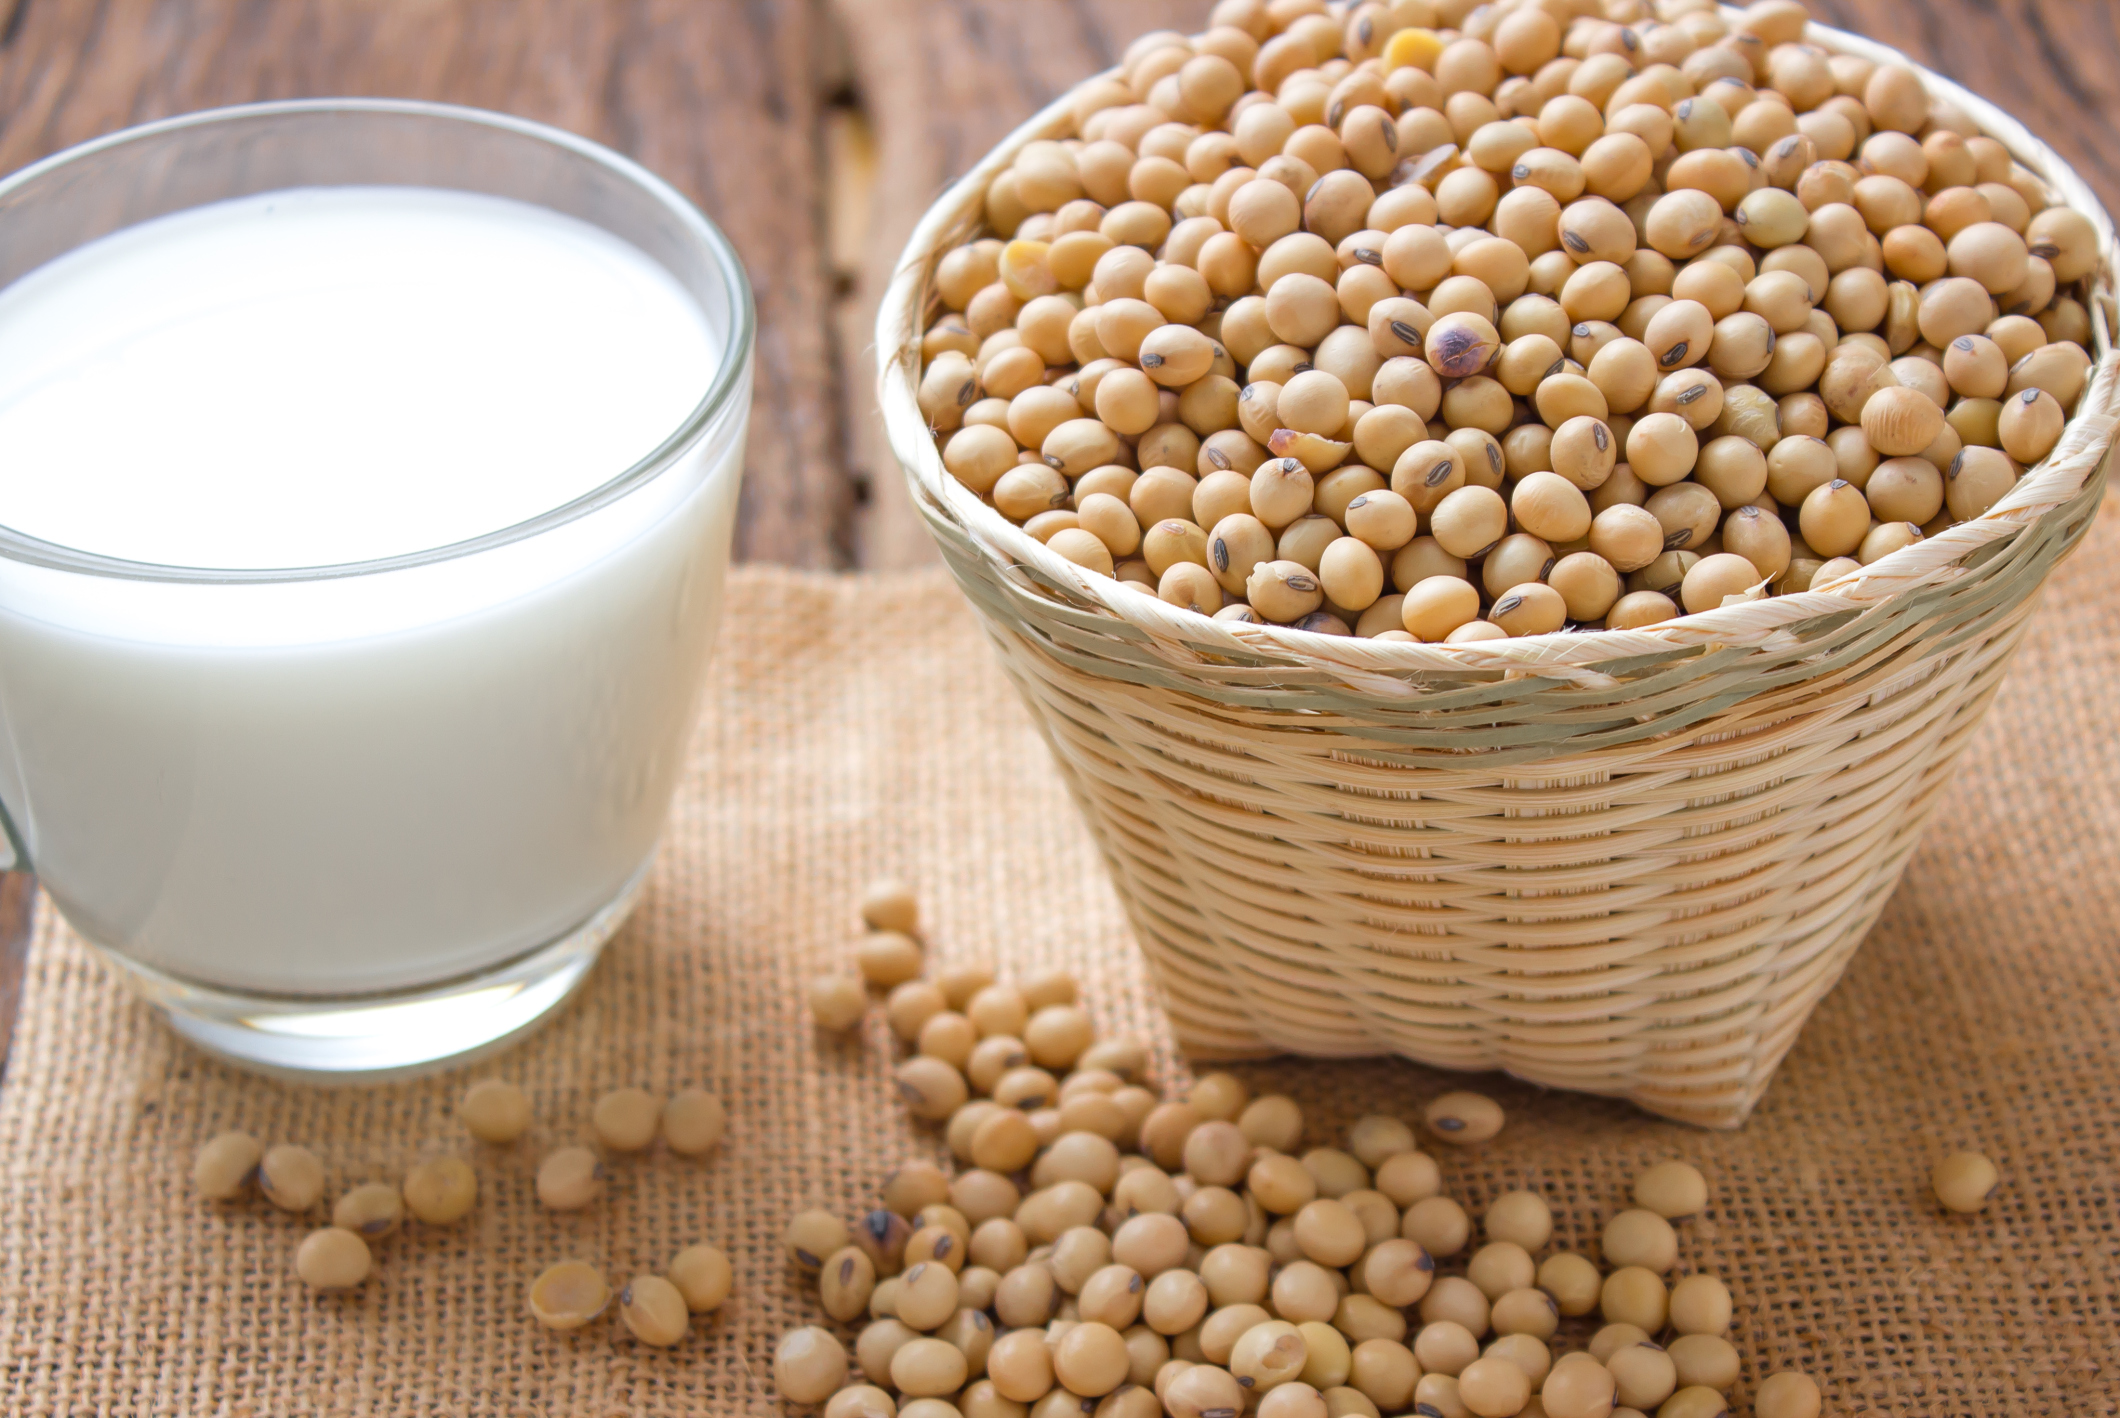 Is Vanilla Silk Soy Milk Good For You